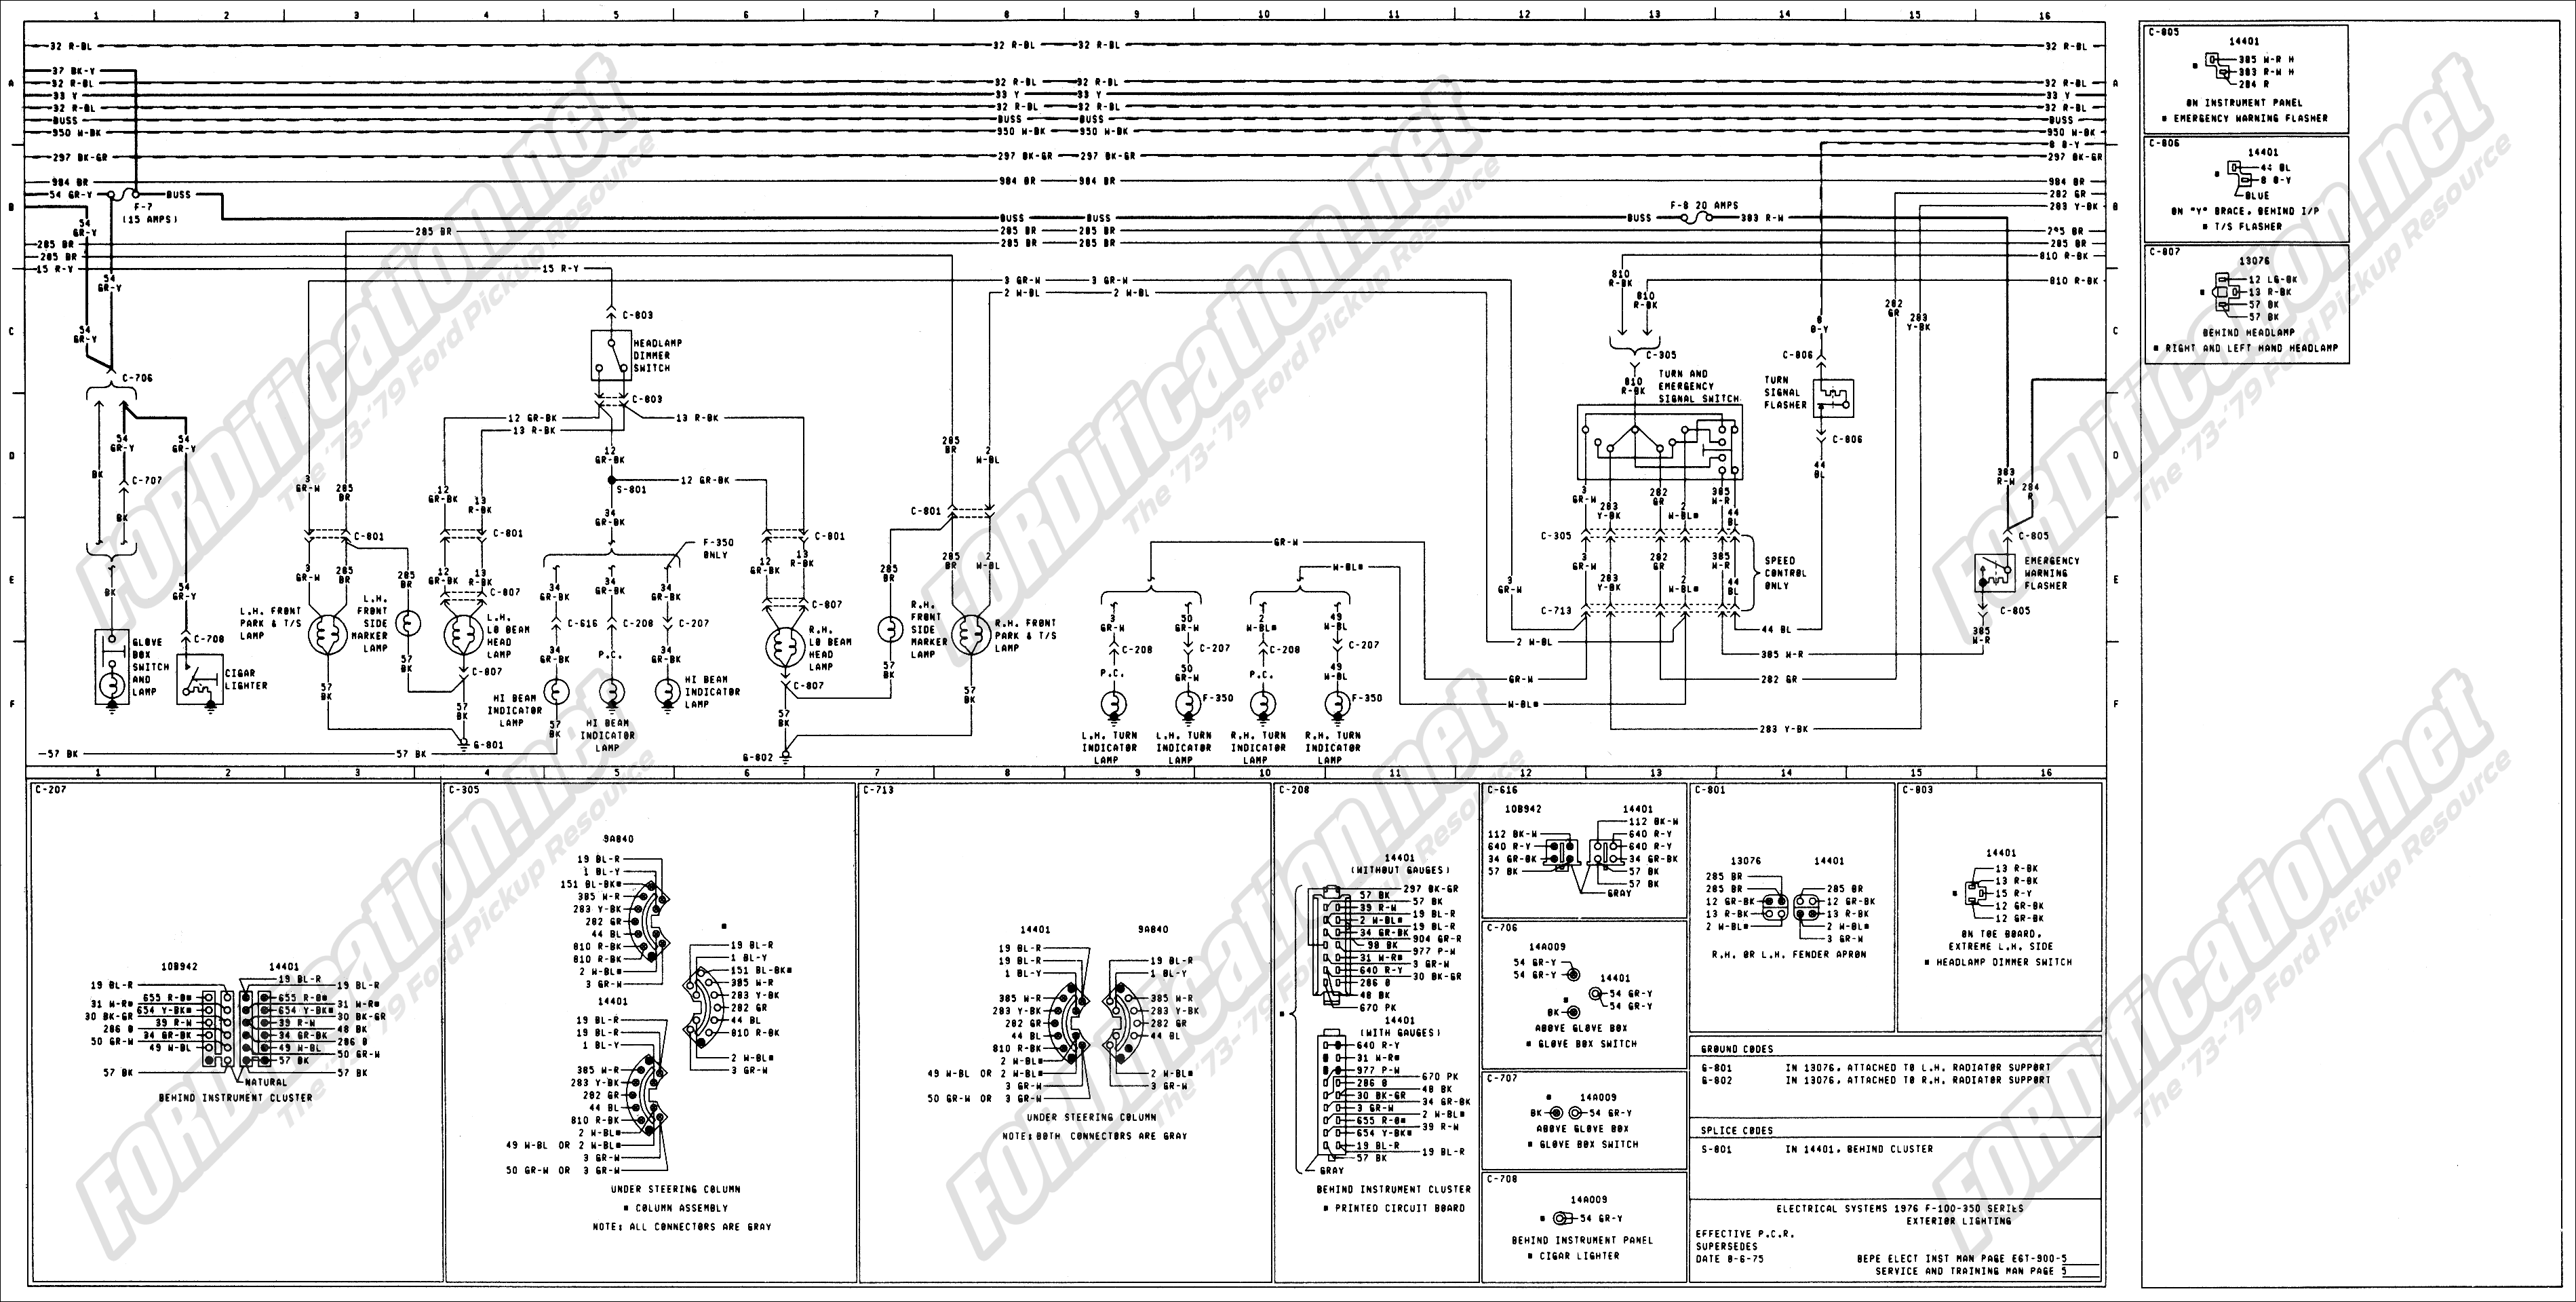 1972 Mustang Wiring Diagram Color About 2014 F 150 Tail Light 1977 Ford Truck Tach